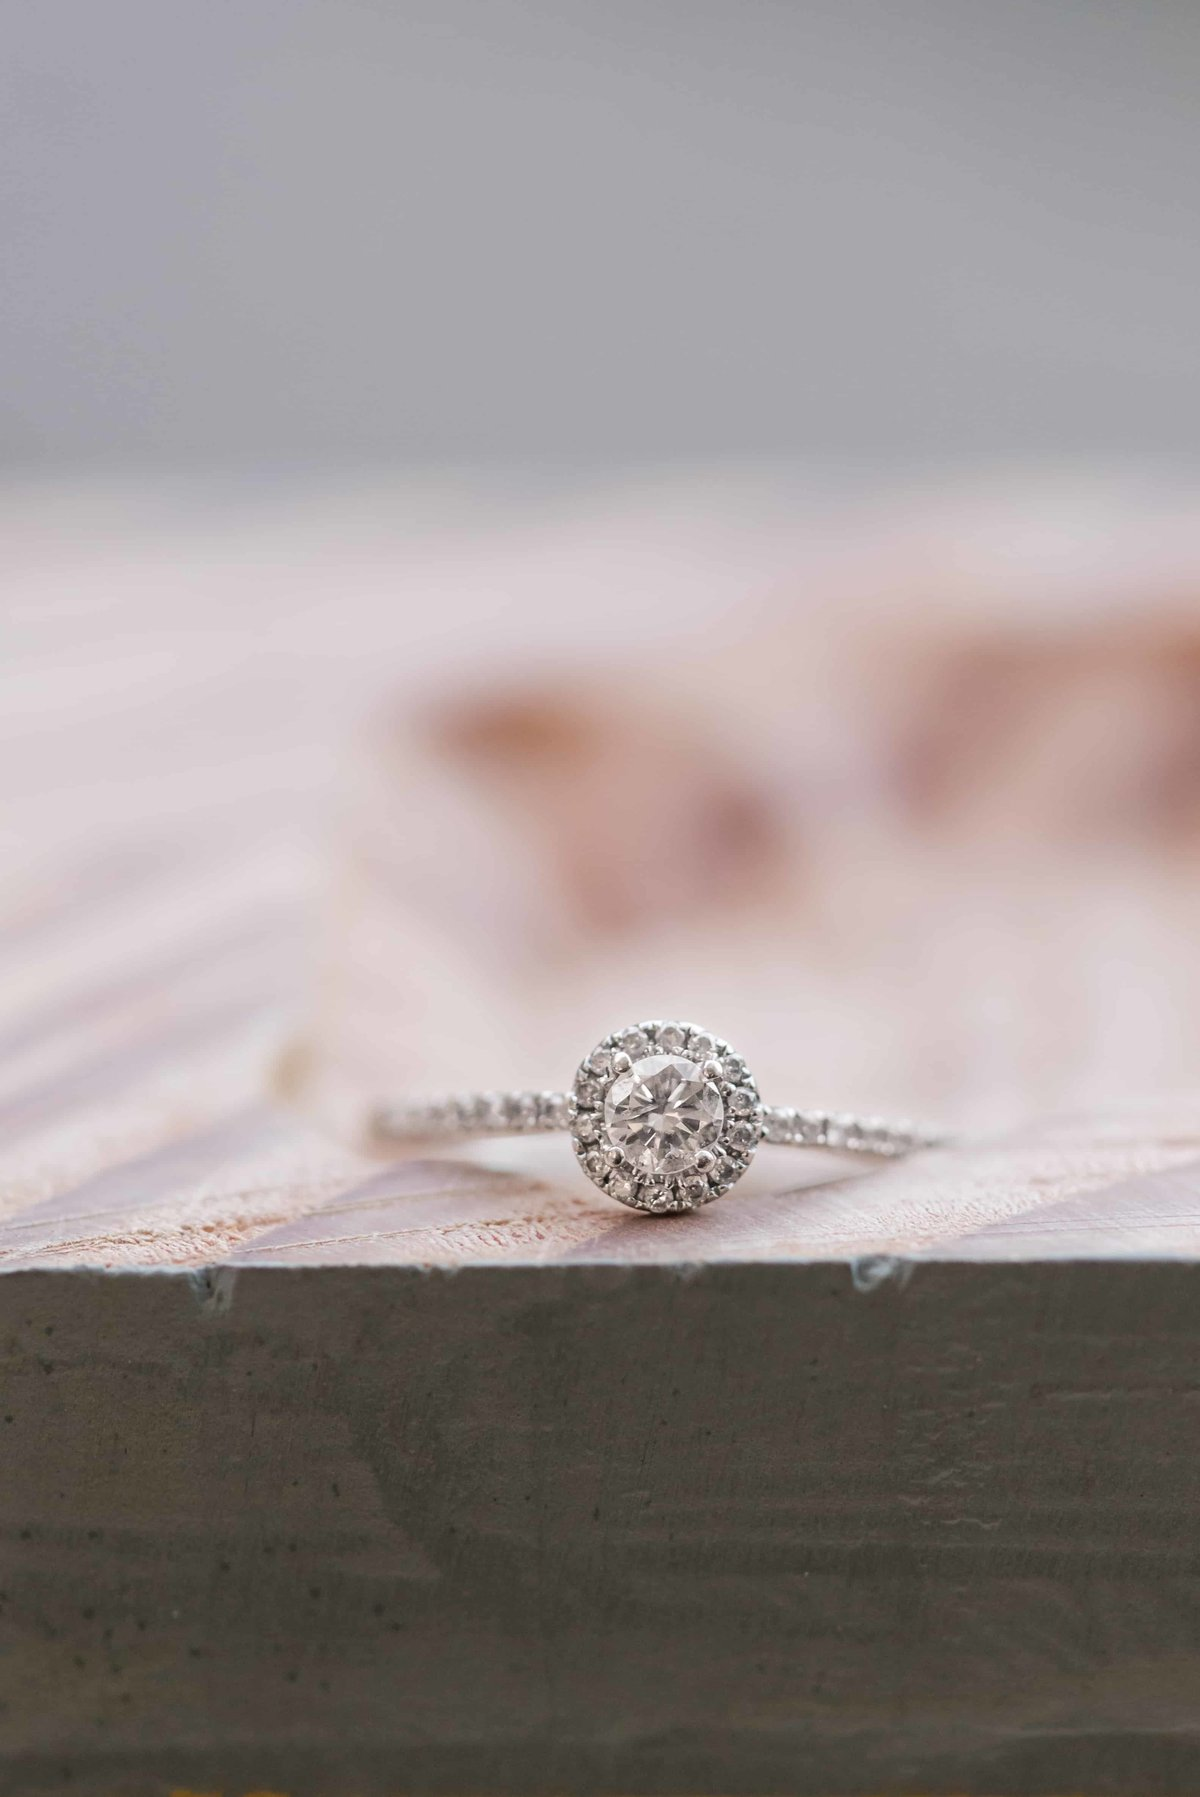 Closeup of engagement ring